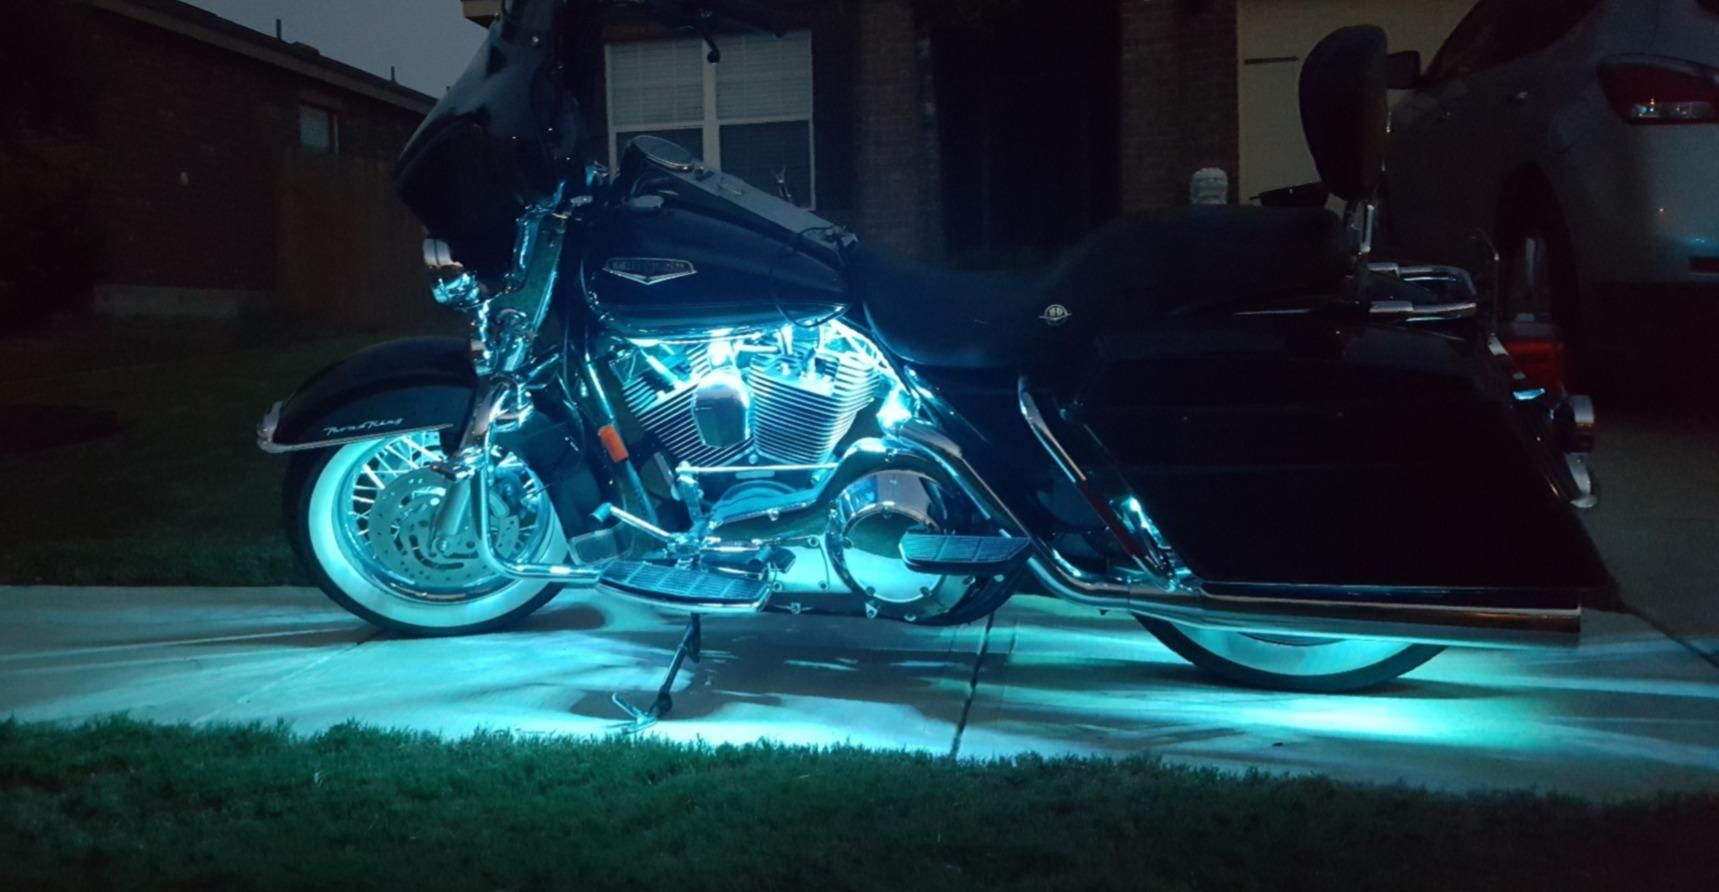 Beautiful Led Strip Lights On A Harley Motorcycle From Sunpie Harley Motorcycle Led Lighting Harley Davidson